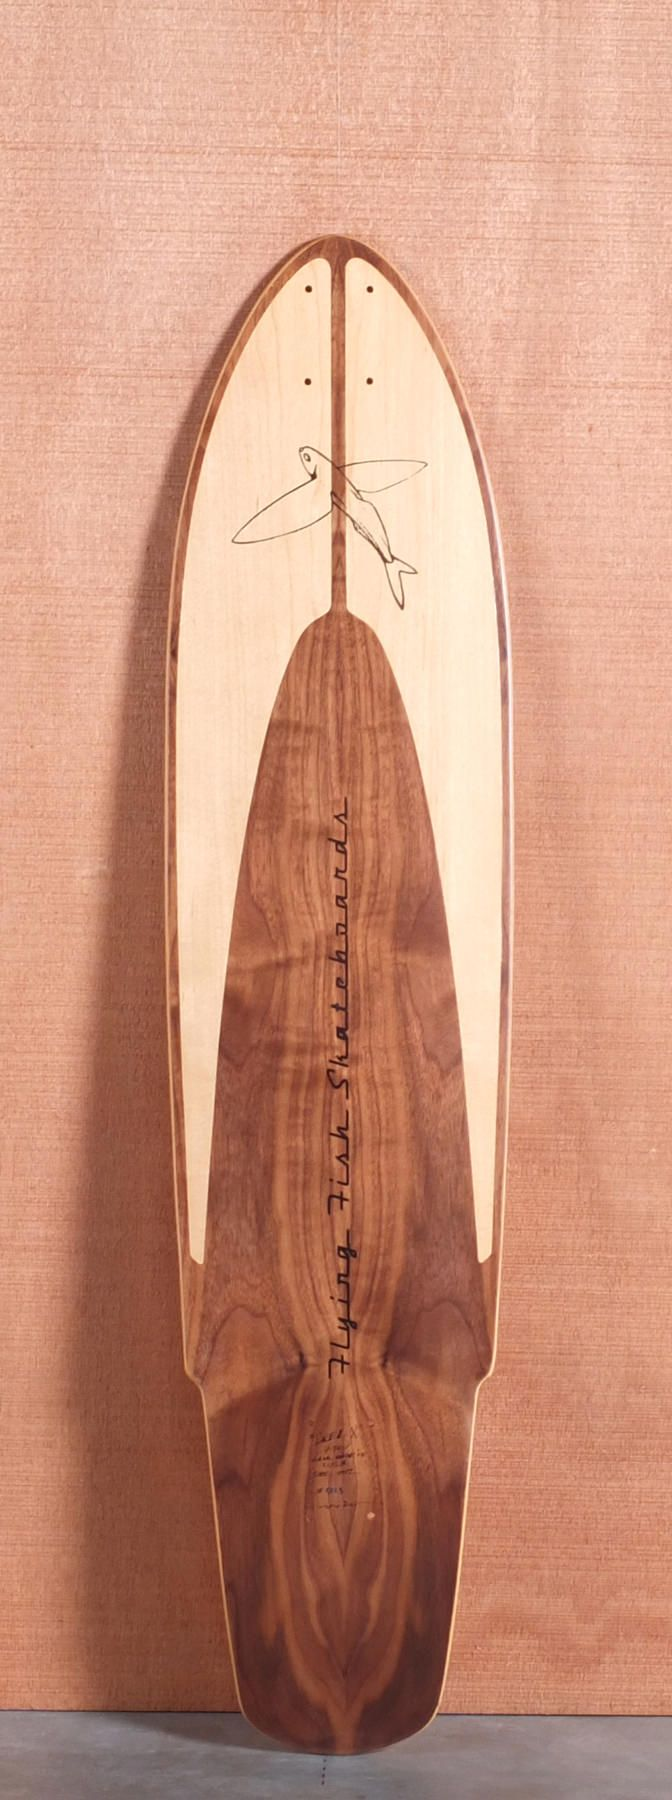 "Flying Fish 42"" Kicktail Longboard Deck..Either this one or the Honey Cruiser. It could go either way..."